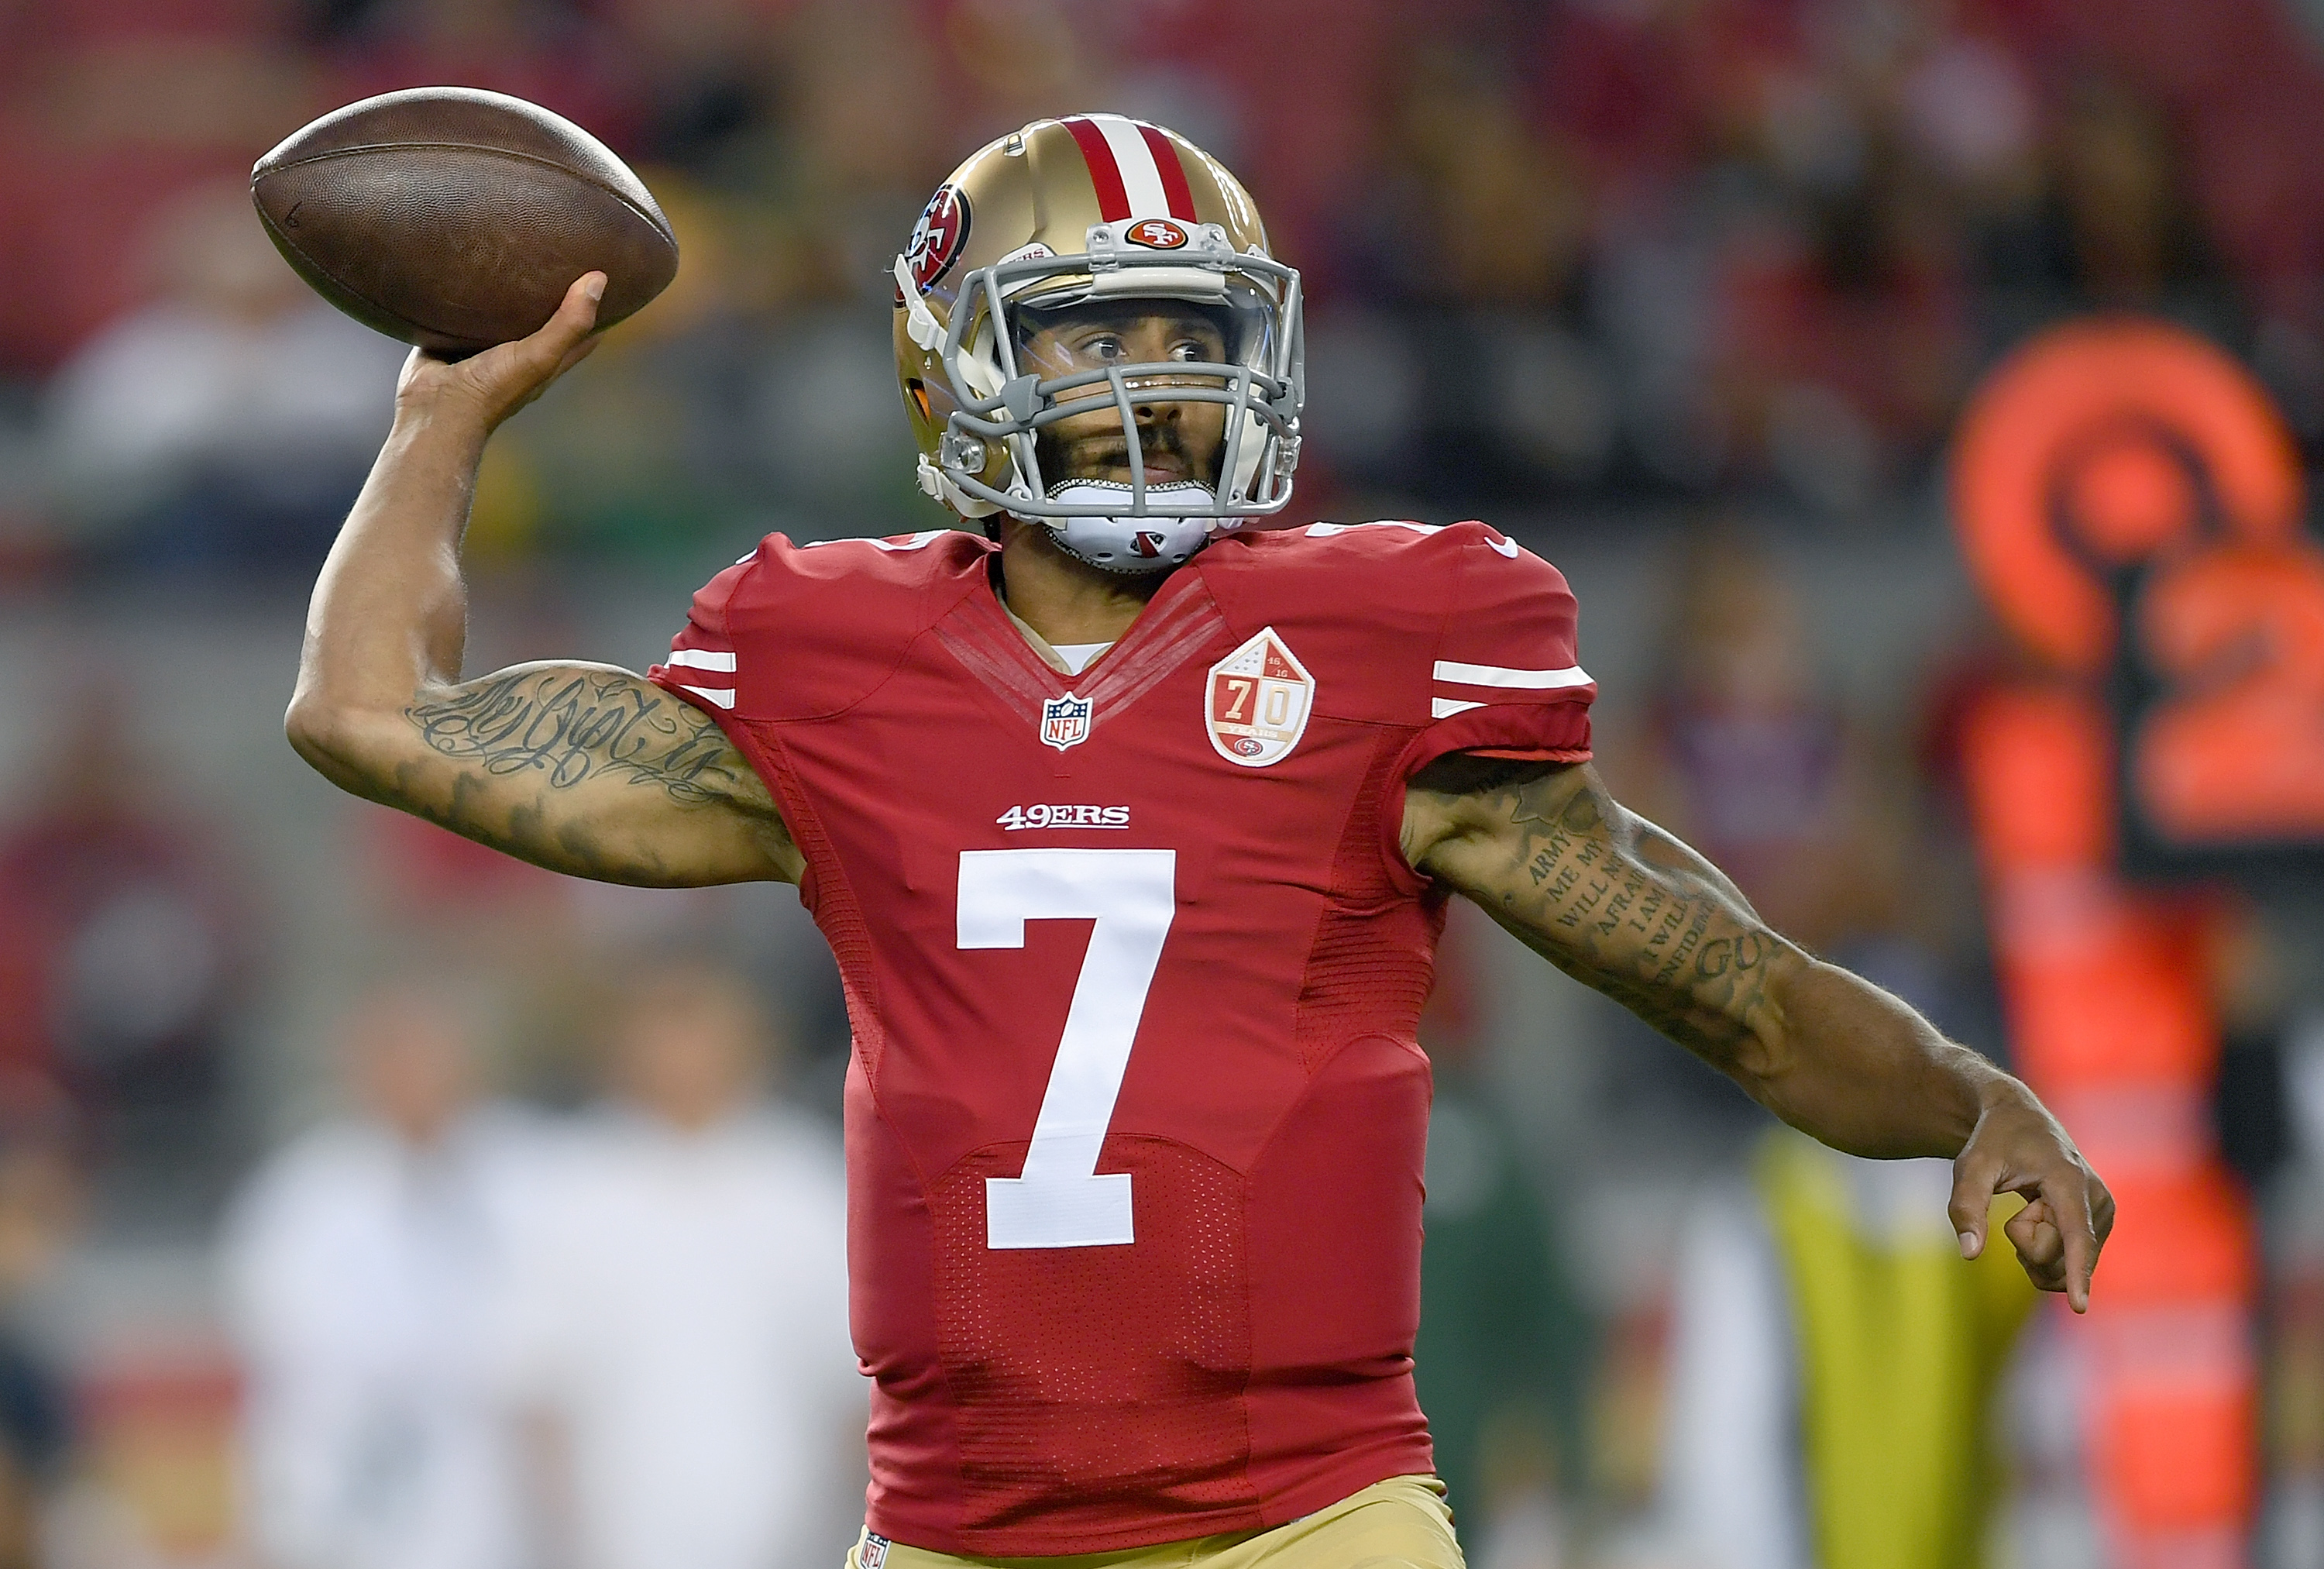 Quarterback Colin Kaepernick #7 of the San Francisco 49ers throws a pass against the Green Bay Packers in the first half of their preseason football game at Levi's Stadium on August 26, 2016 in Santa Clara, California.Thearon W. Henderson—Getty Images